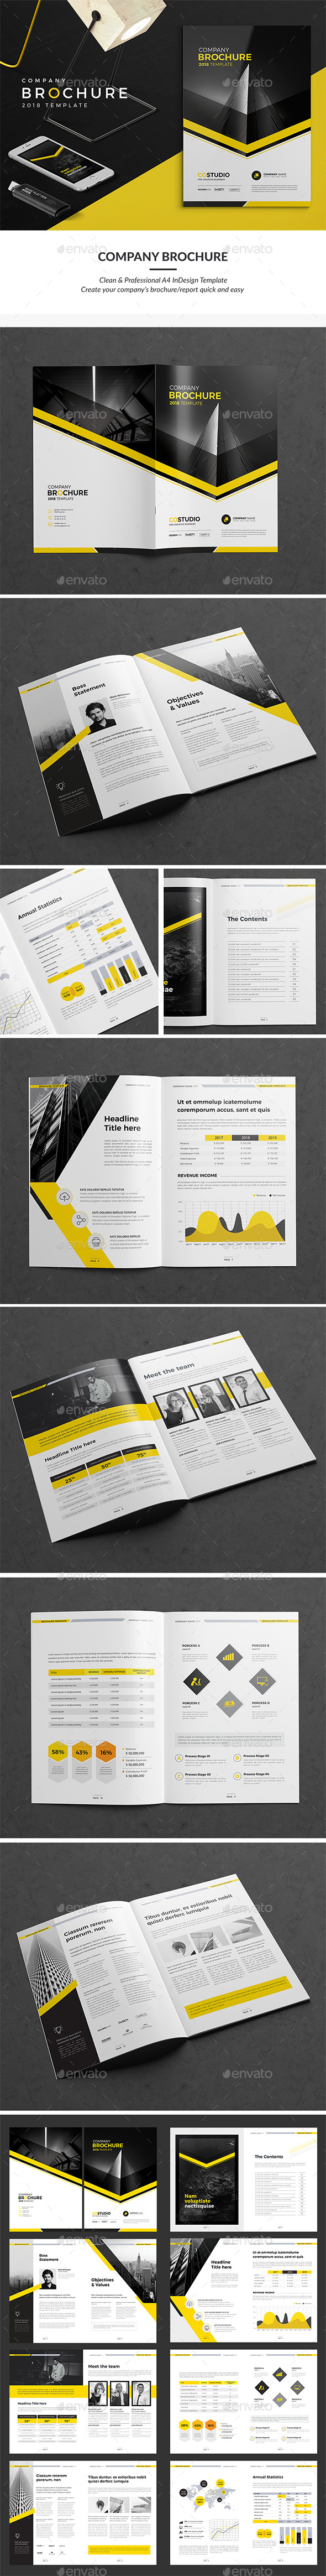 GraphicRiver YB Company Brochure 16 Pages 20420294